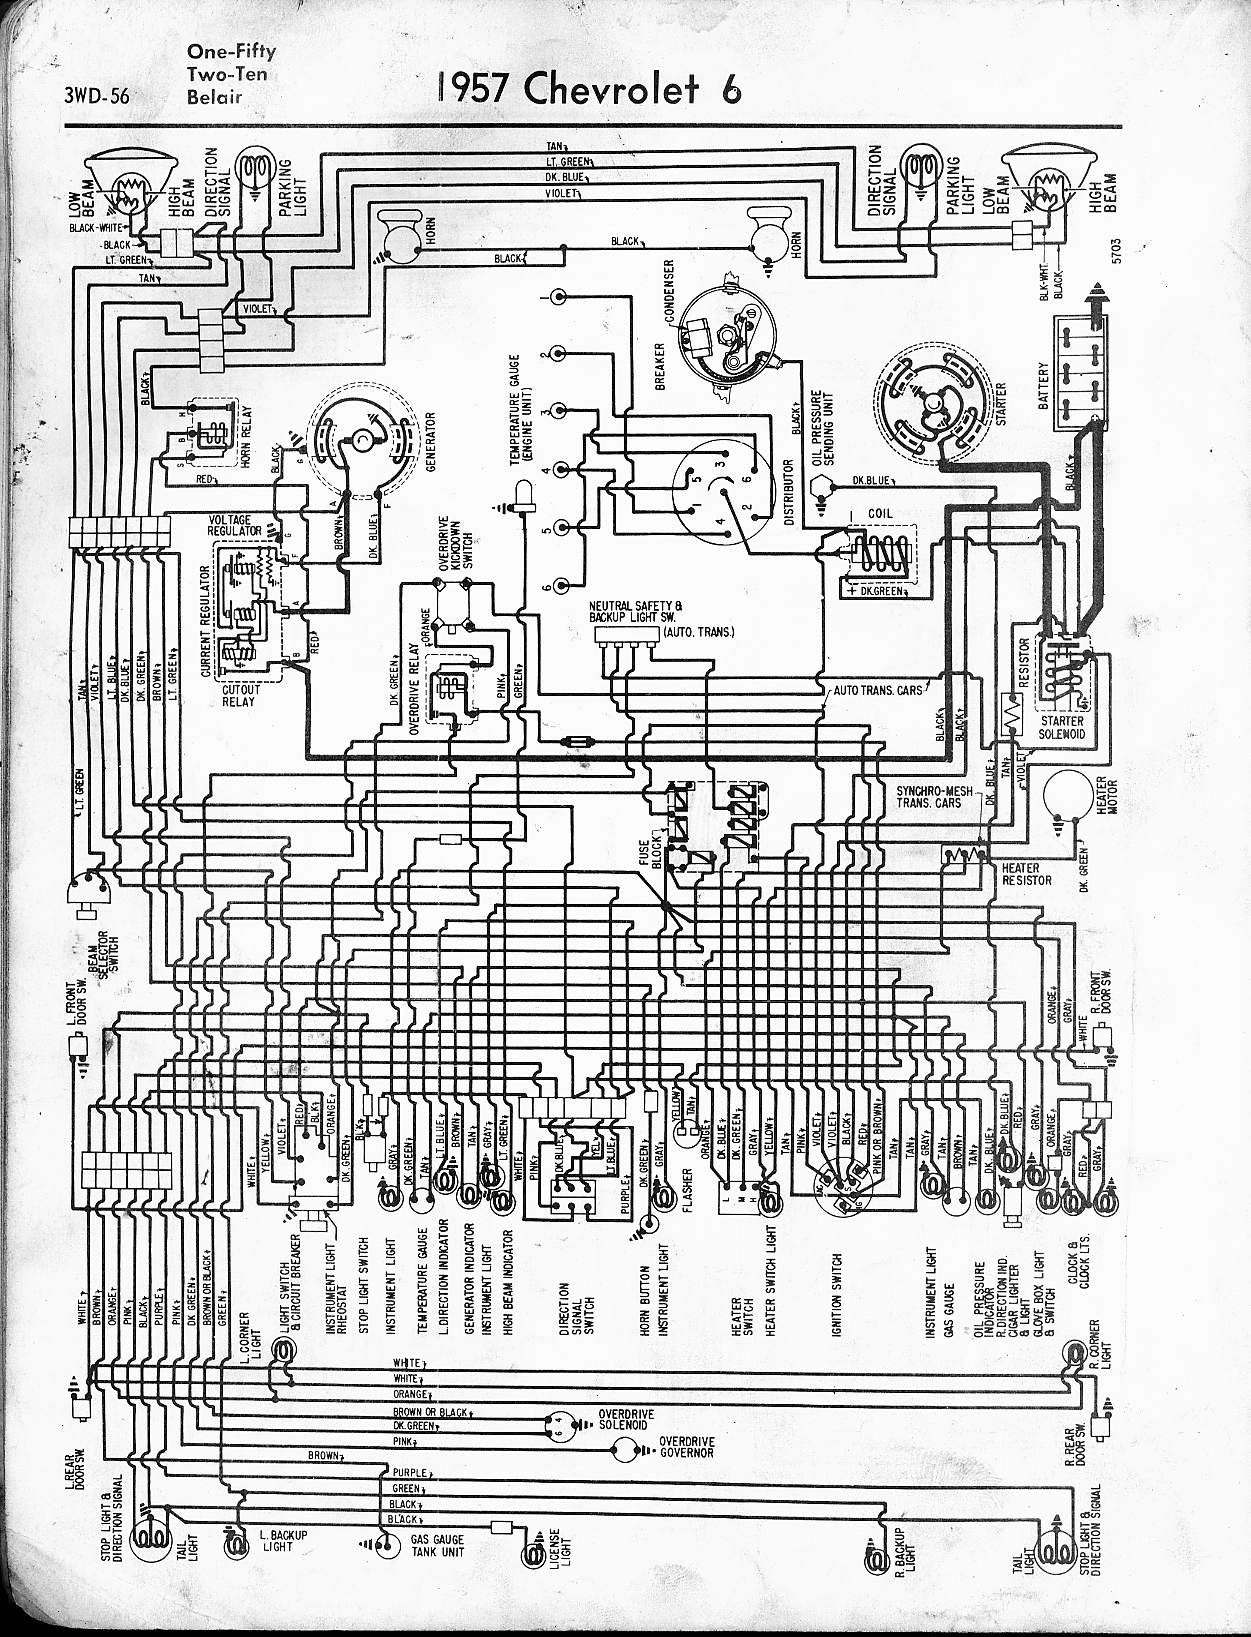 hight resolution of 1956 chevrolet bel air wiring diagram data diagram schematic bel air as well 1956 chevy colors on 1955 chevy truck wiring harness